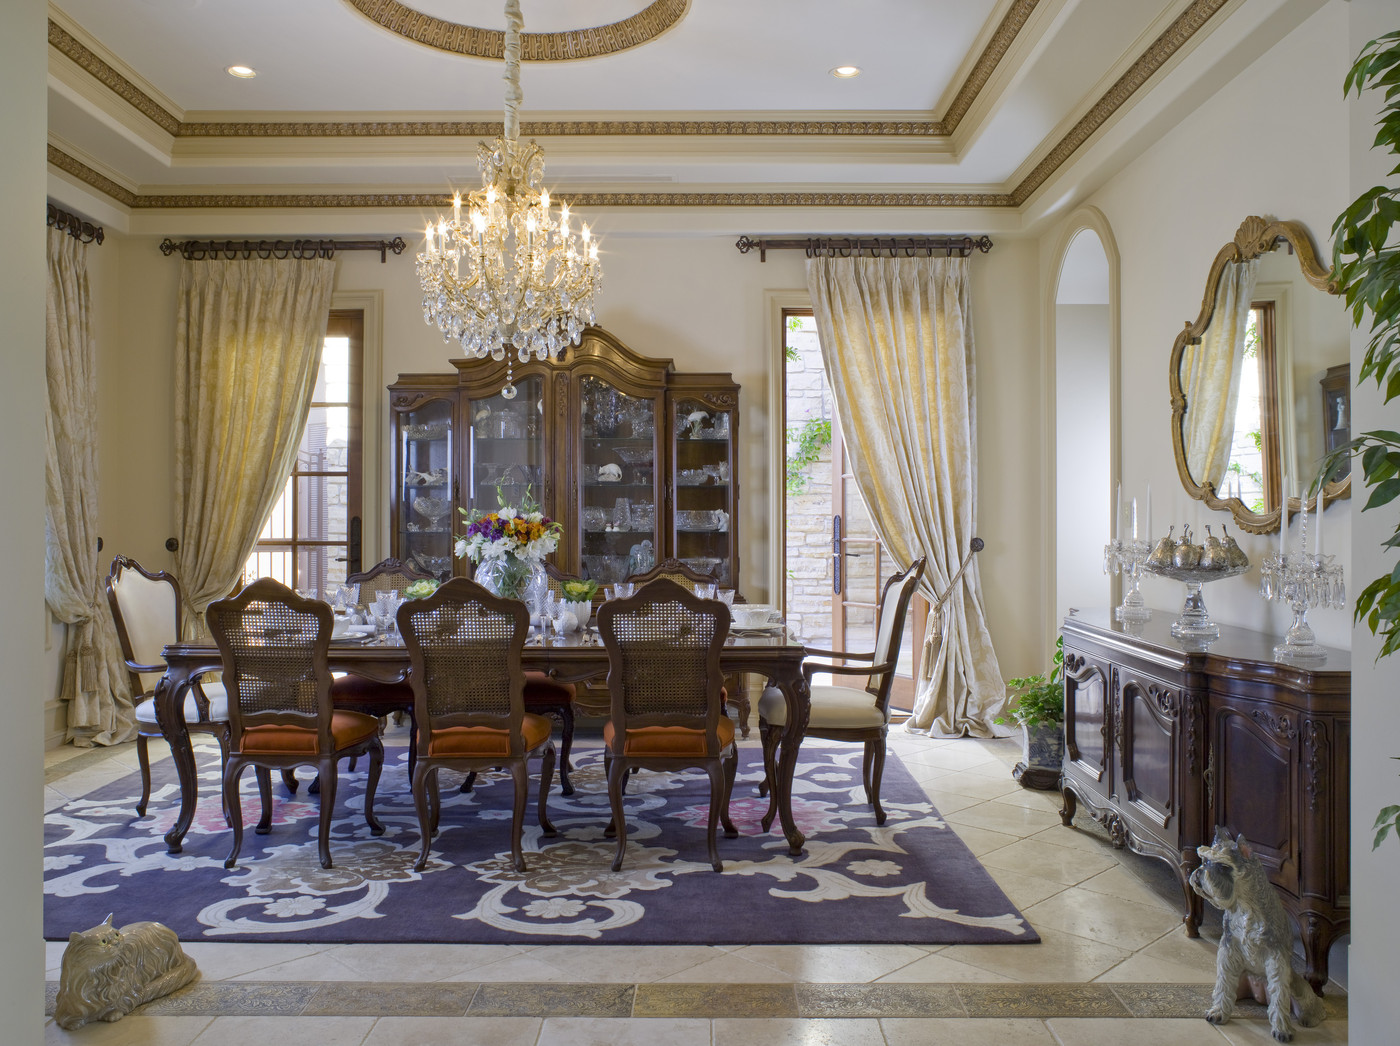 traditional dining room dining room decorating ideas lonny traditional dining room by g p schafer architect by